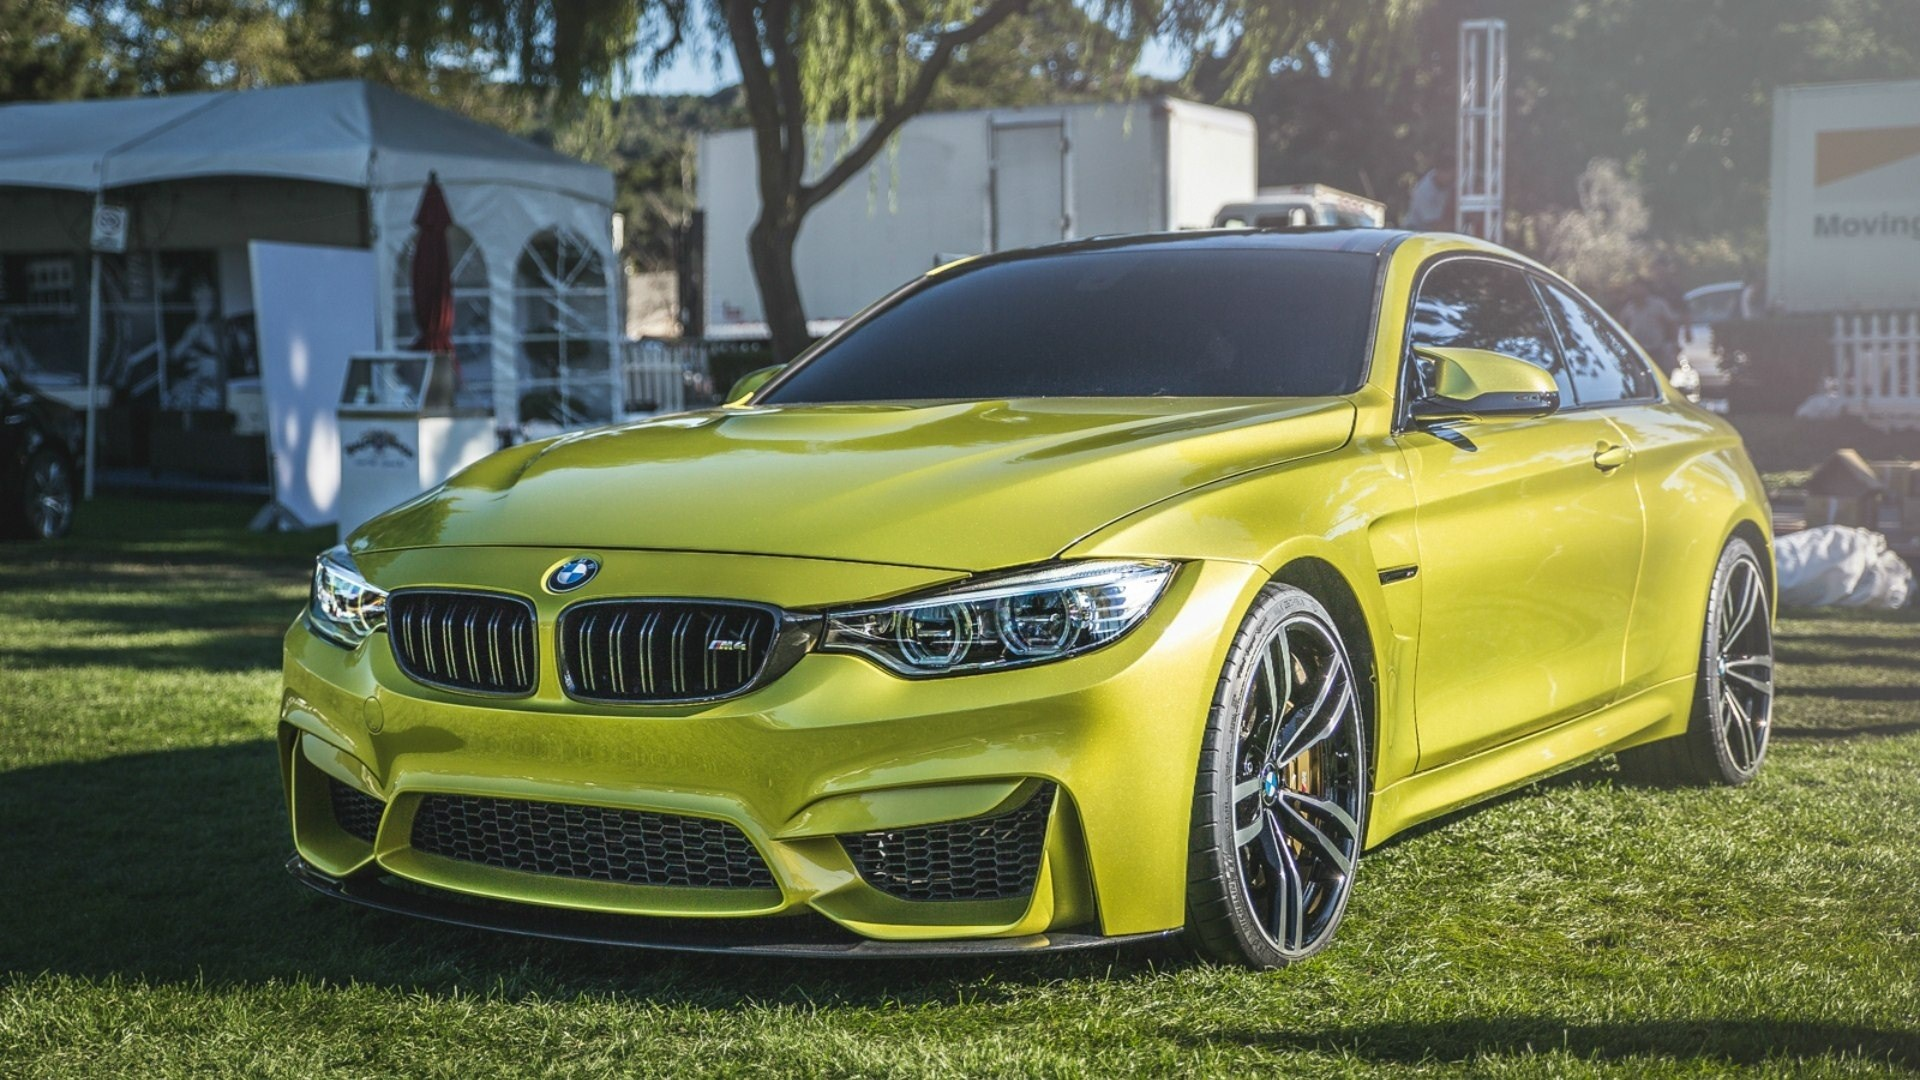 Download Bmw M4 Background 36036 1920x1080 Px High Definition Wallpaper